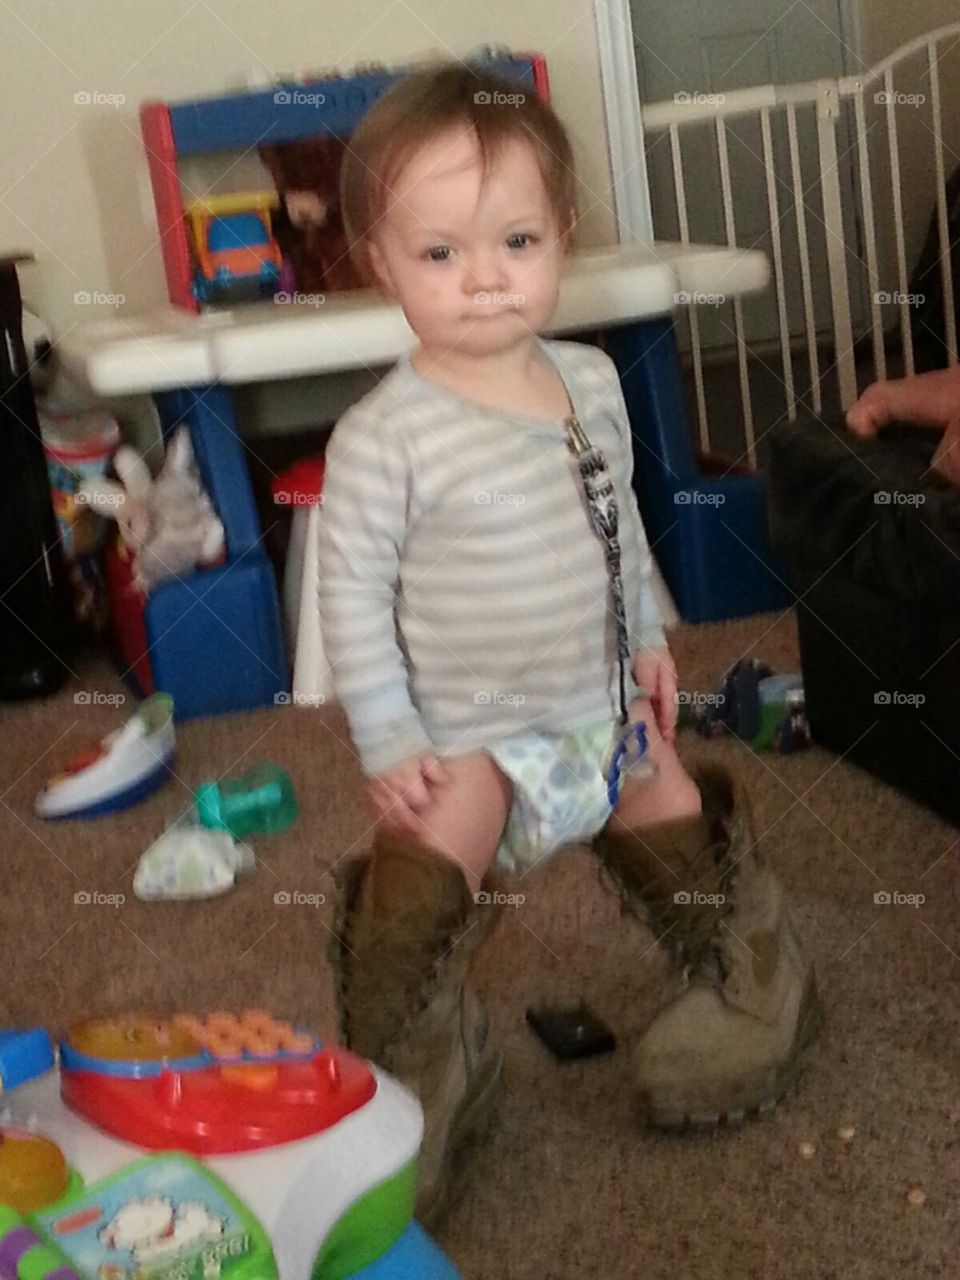 In Daddy's boots. My grandson is wearing his daddy's work boots